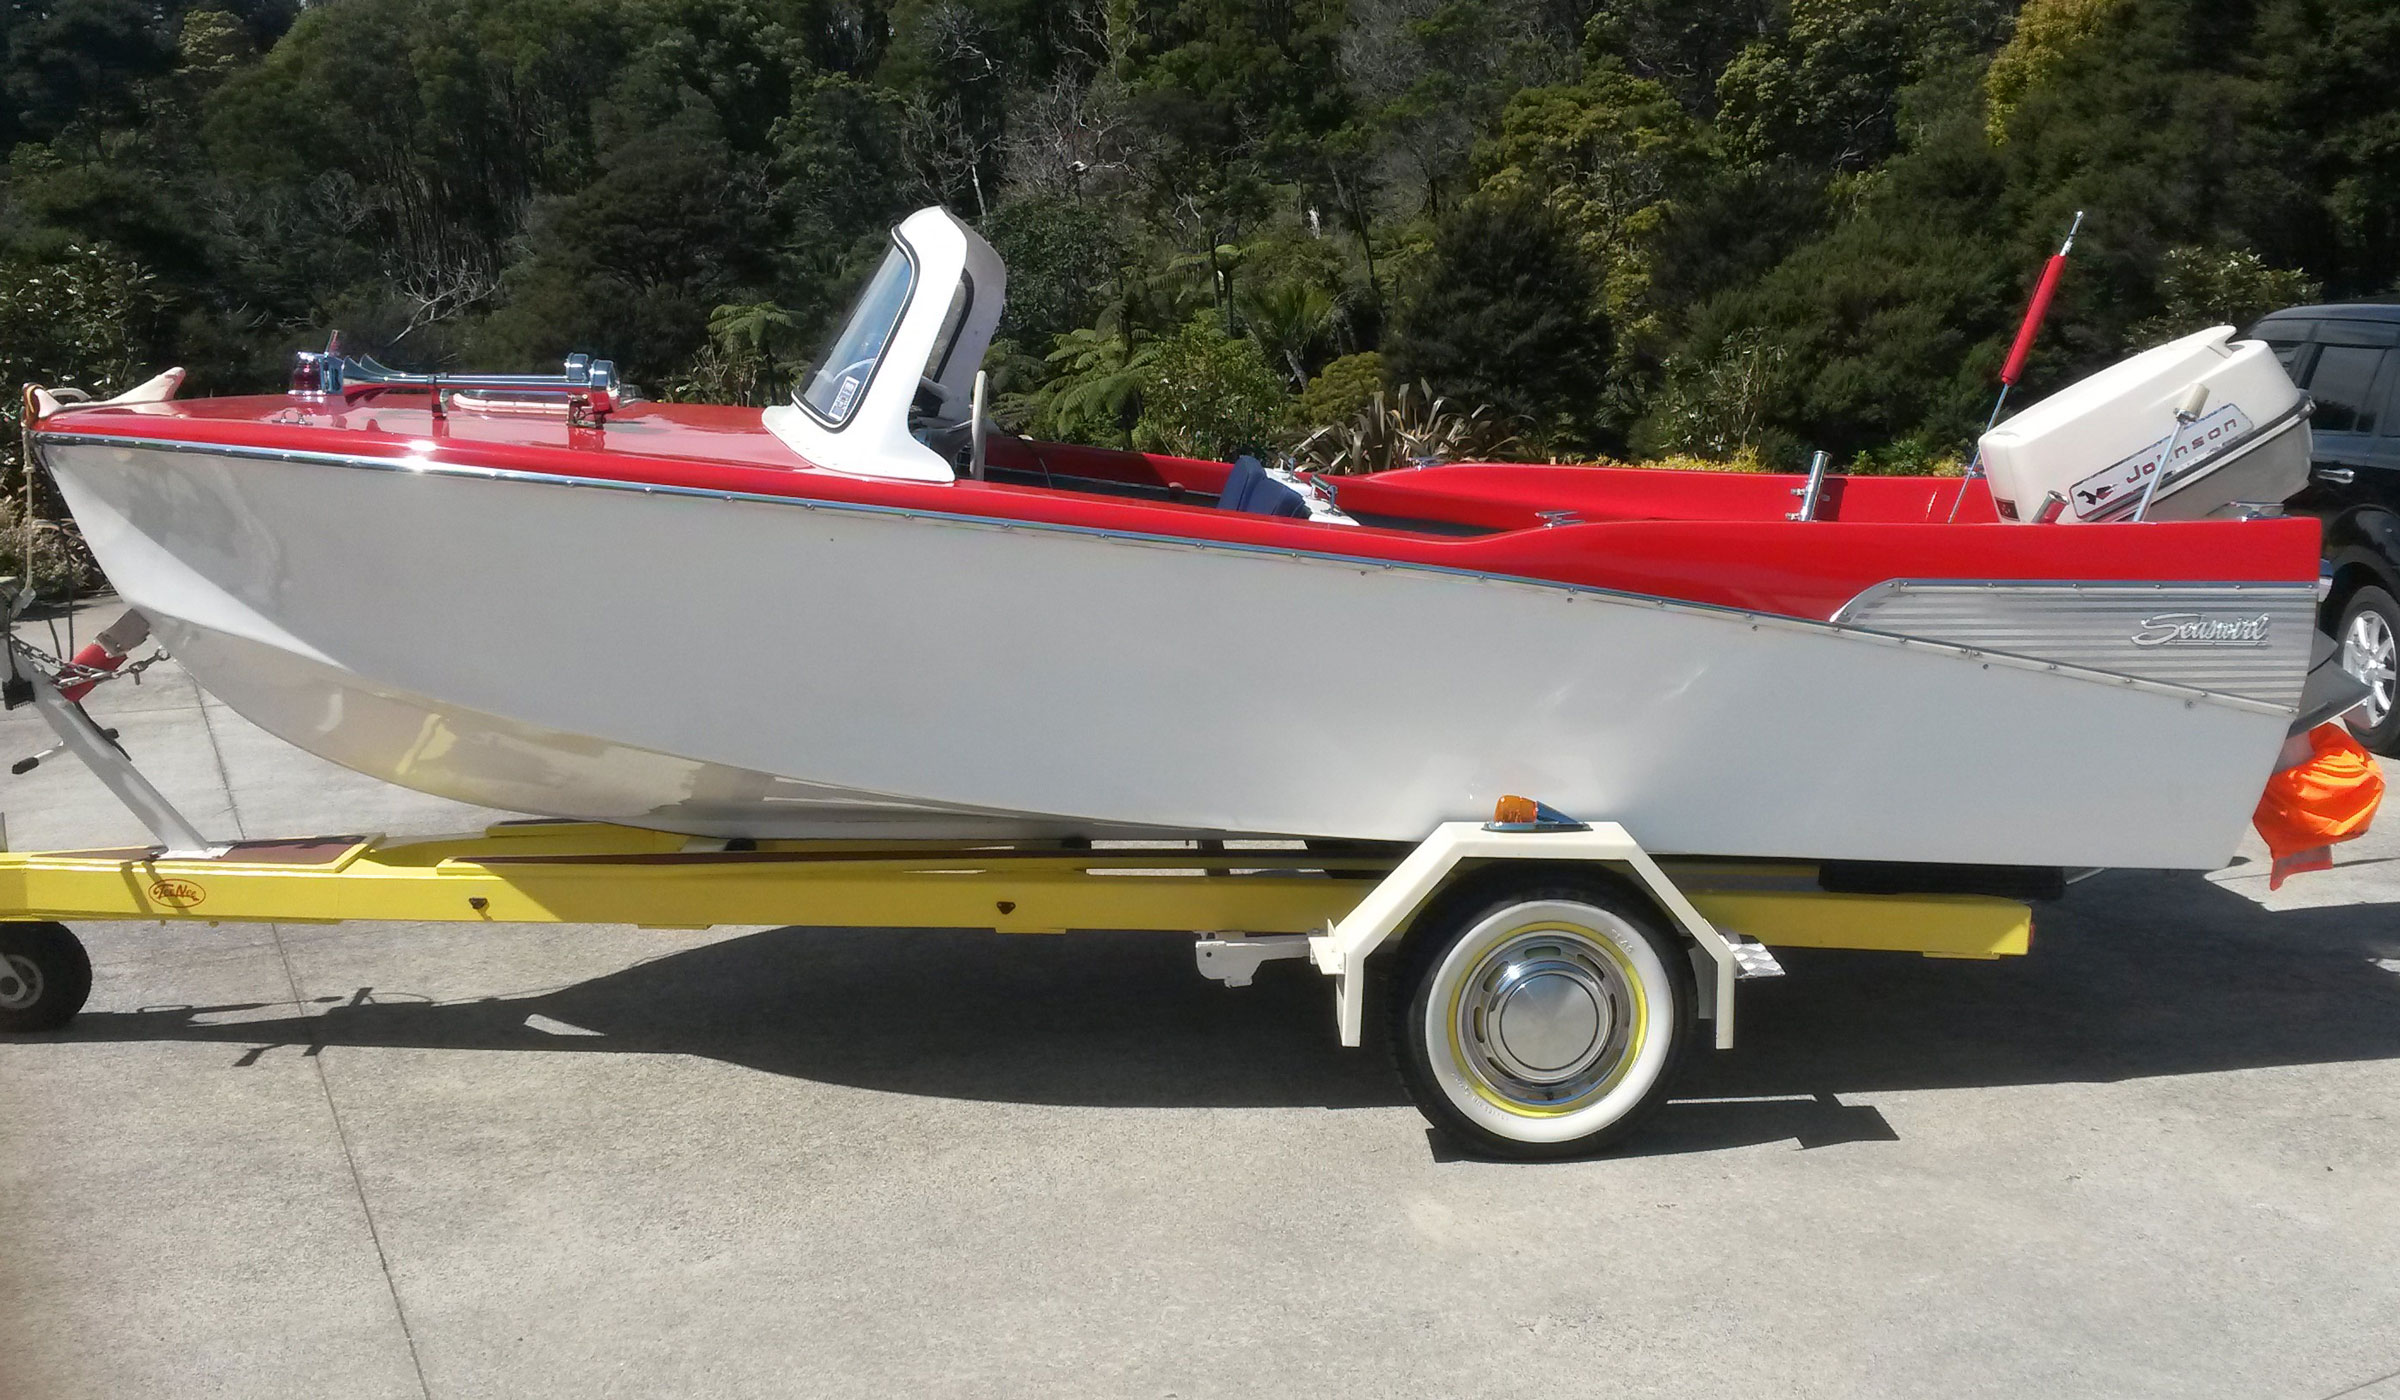 Call out for 'Quirky or Retro' Boats